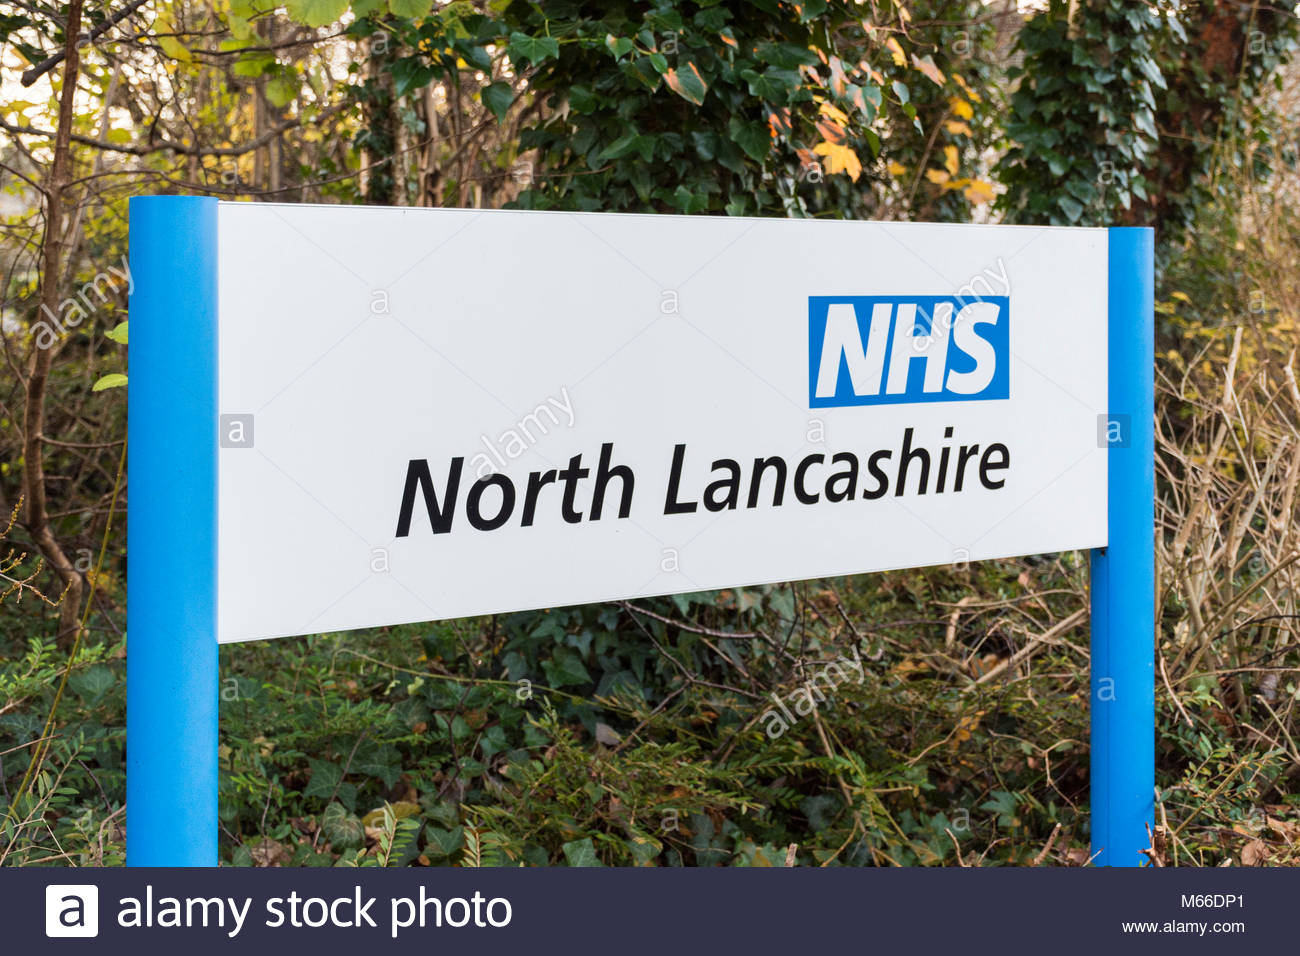 Sign for the NHS , North Lancashire, outside office buildings in the city of Lancaster - Stock Image